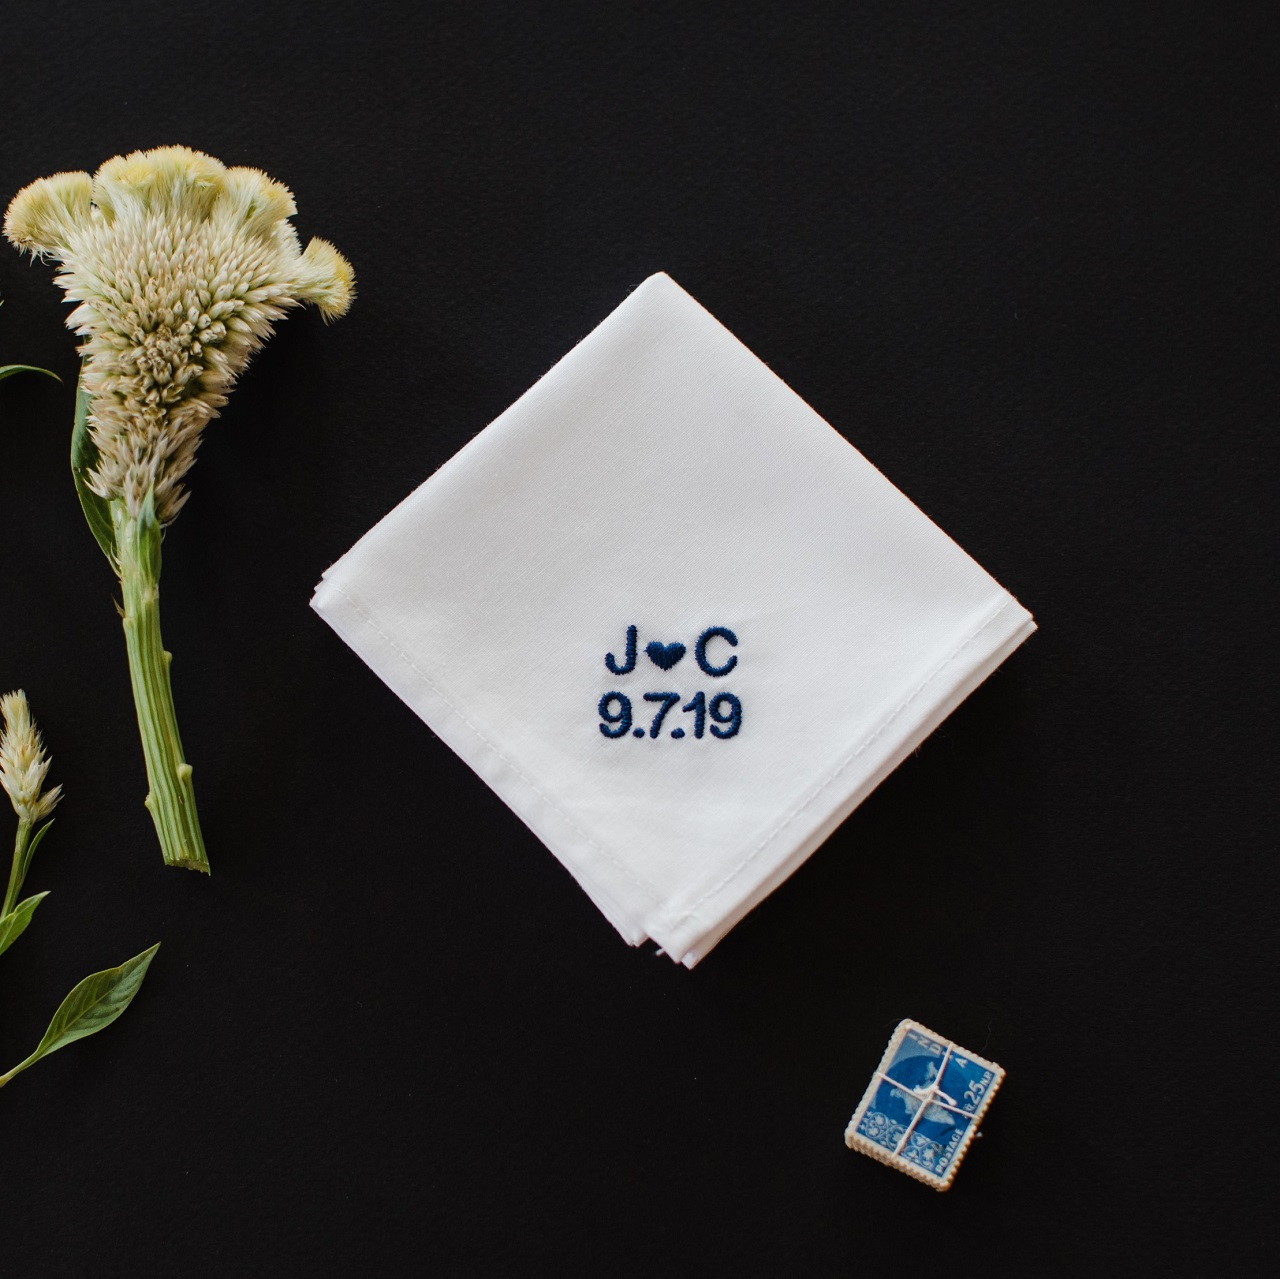 Personalized wedding gifts for couple Embroidered monogrammed handkerchief unique wedding gifts Wedding day gift Initial Letter Hankerchief